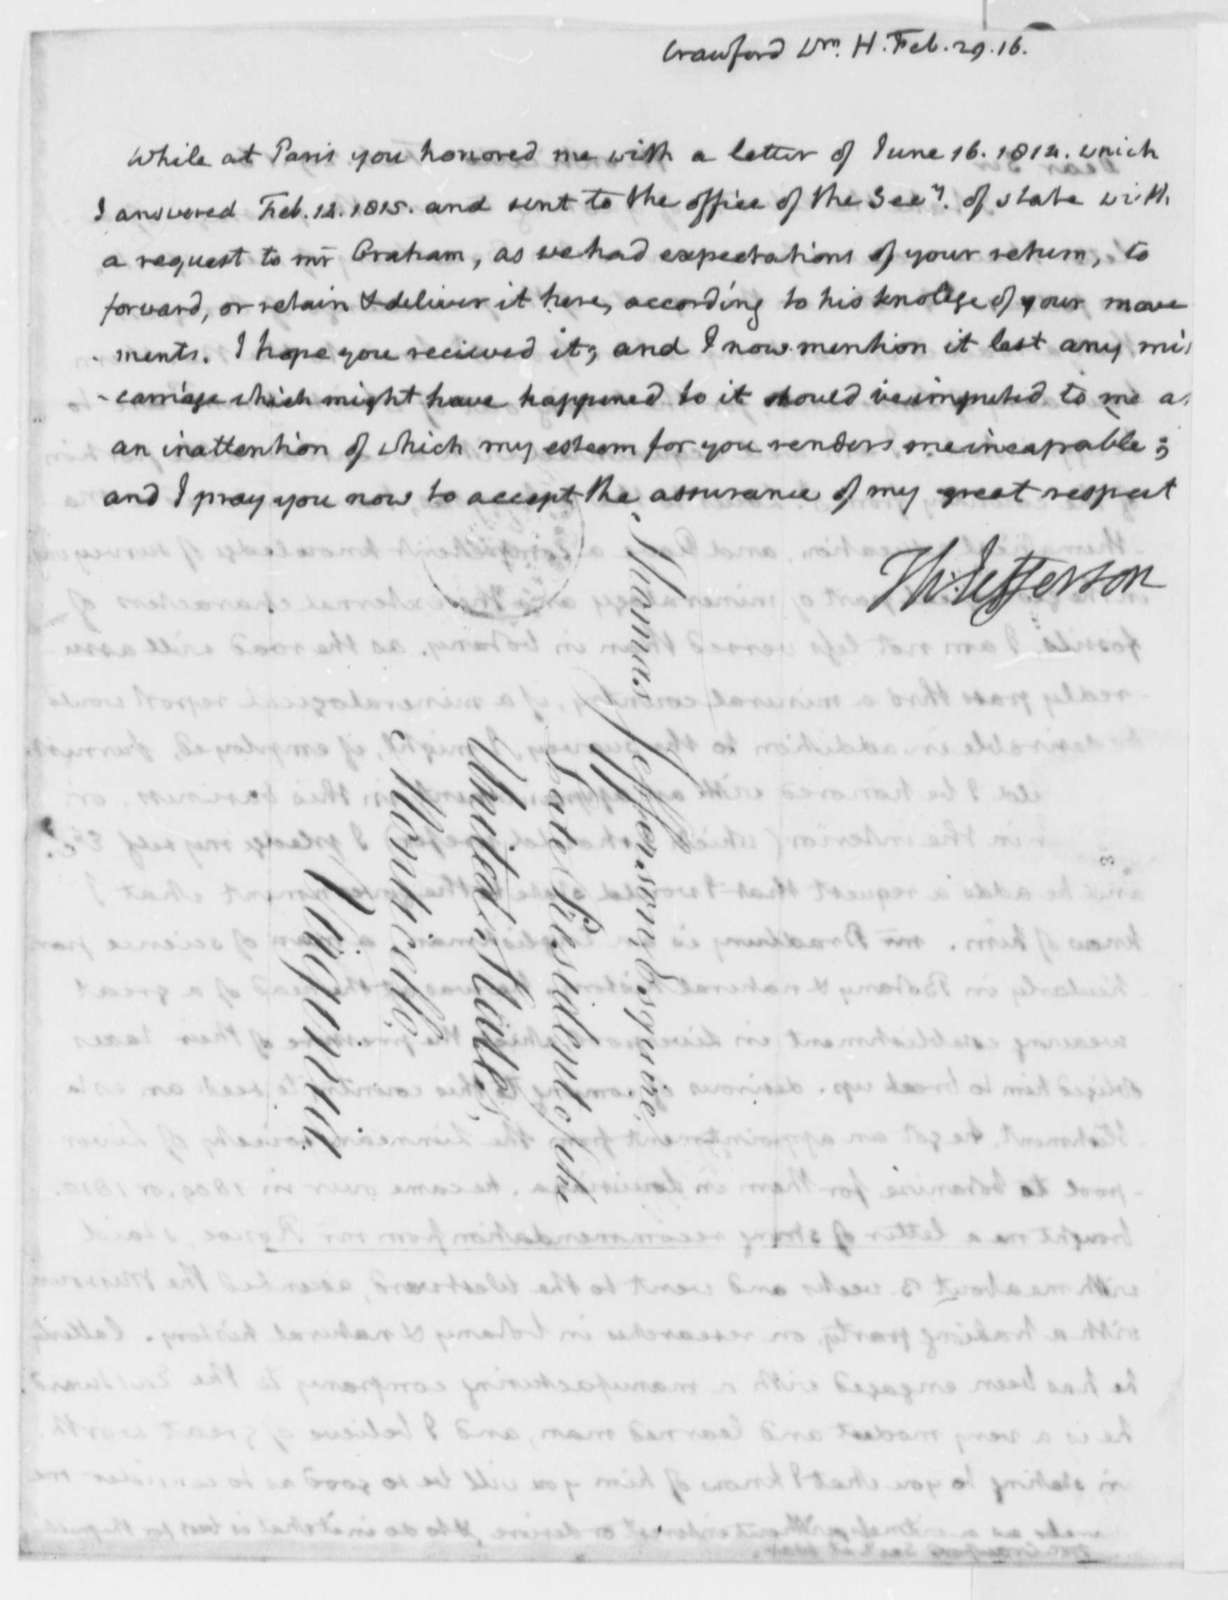 Thomas Jefferson to William H. Crawford, February 29, 1816